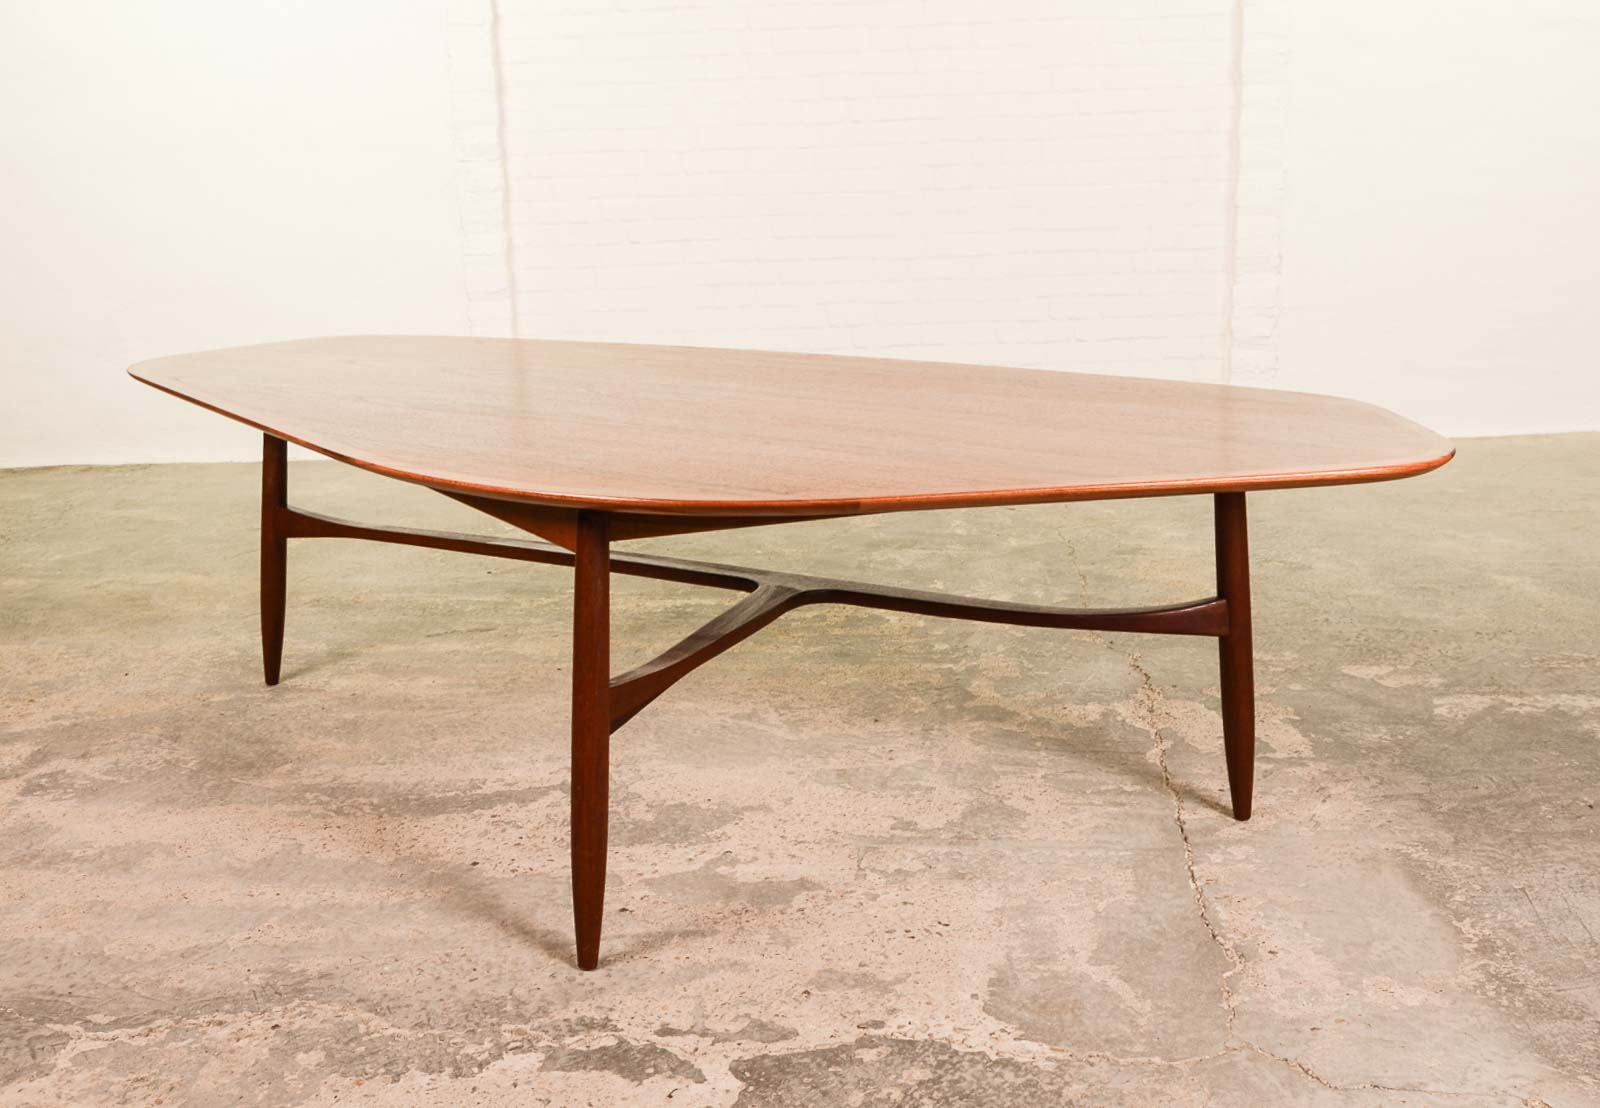 Free Form Shaped Kidney Coffee Table designed by Svante ...